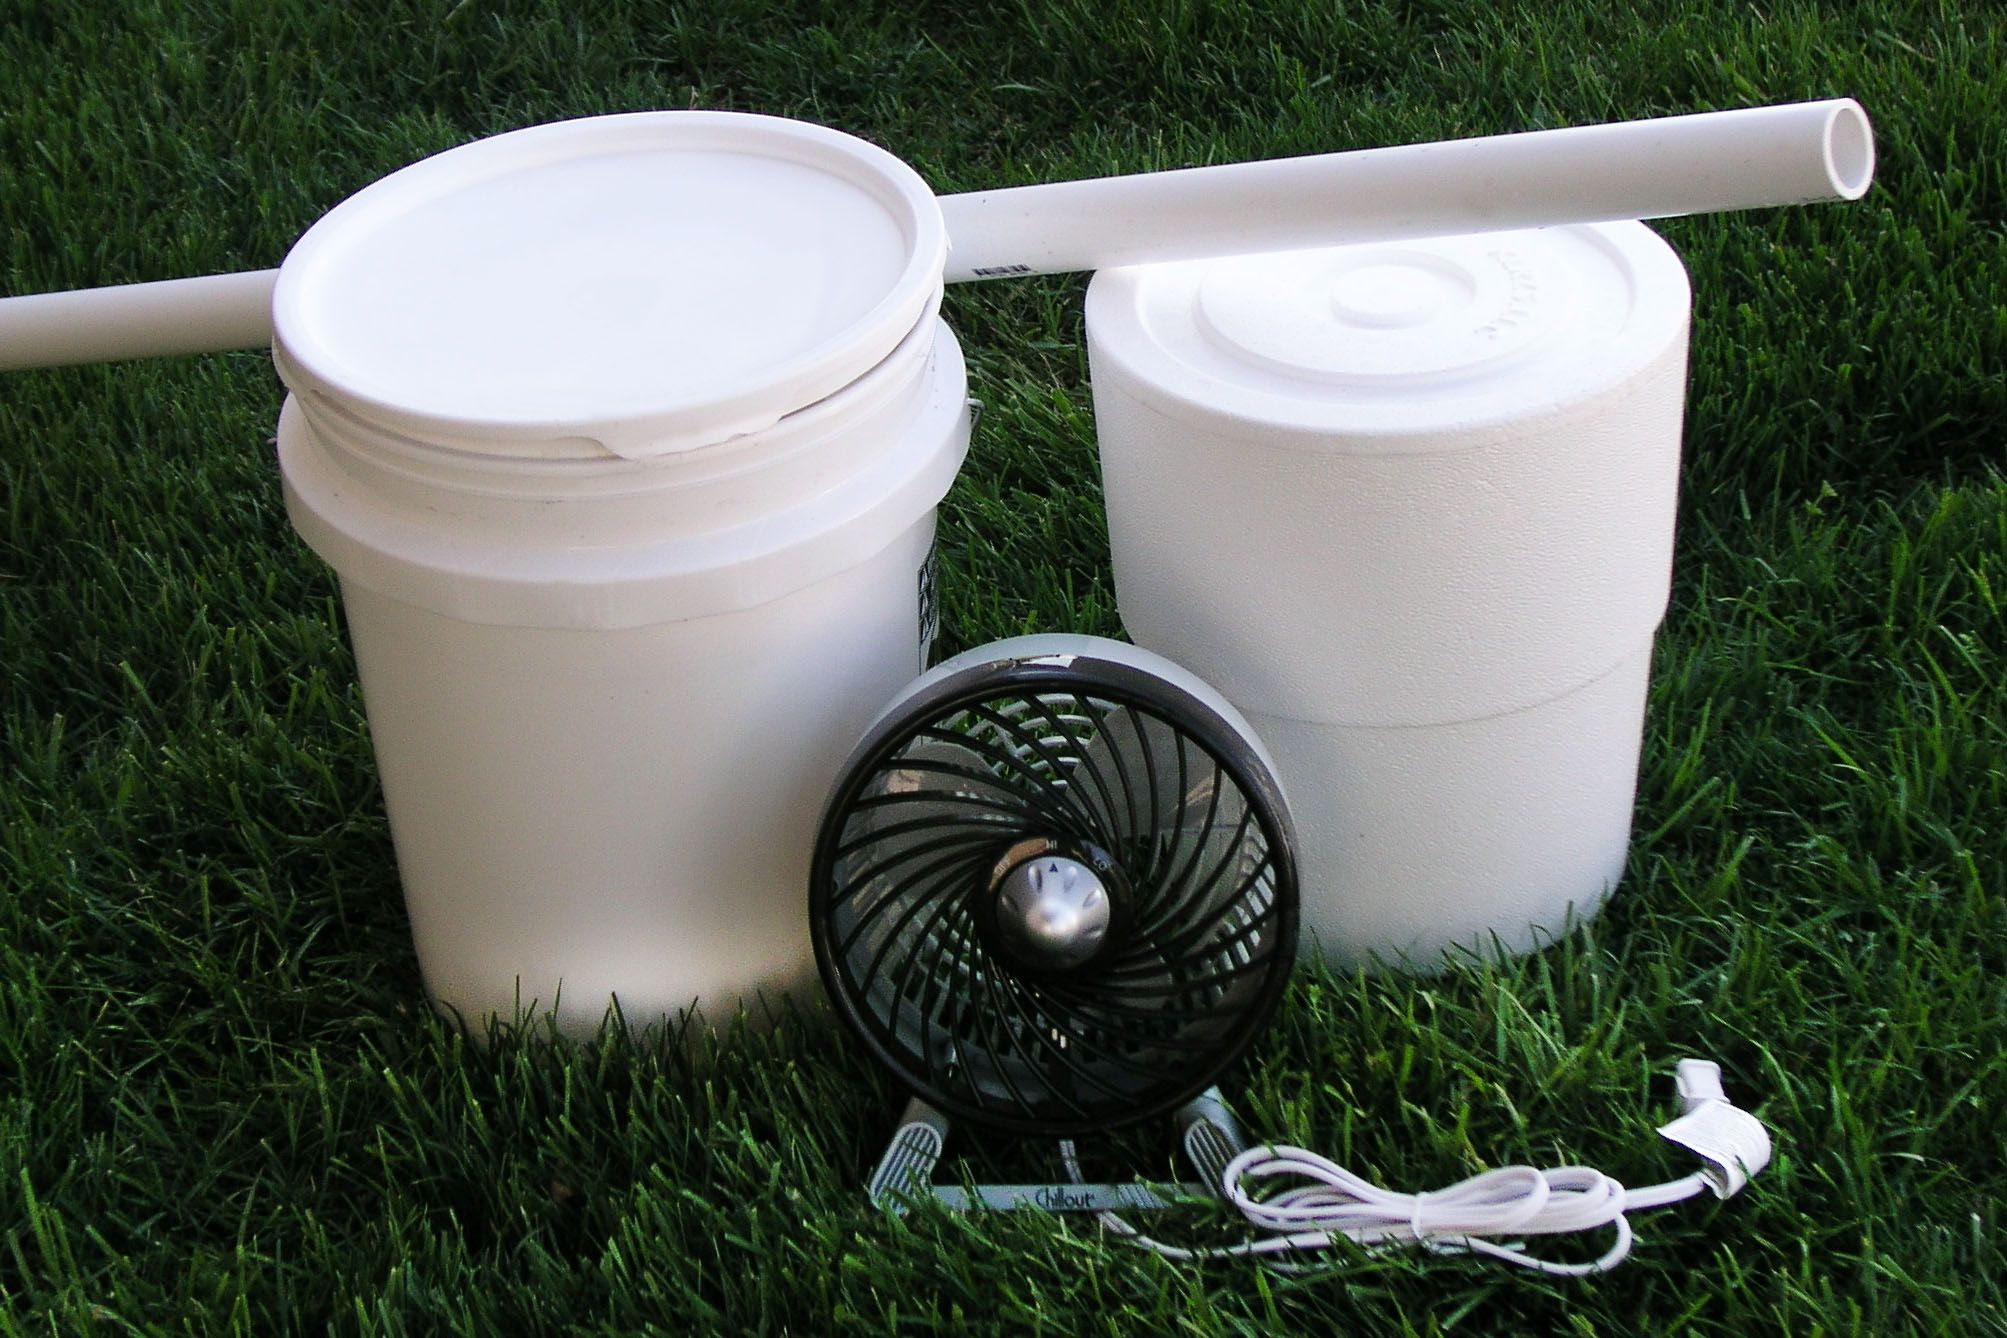 DIY Portable Bucket Air Conditioner Bucket air